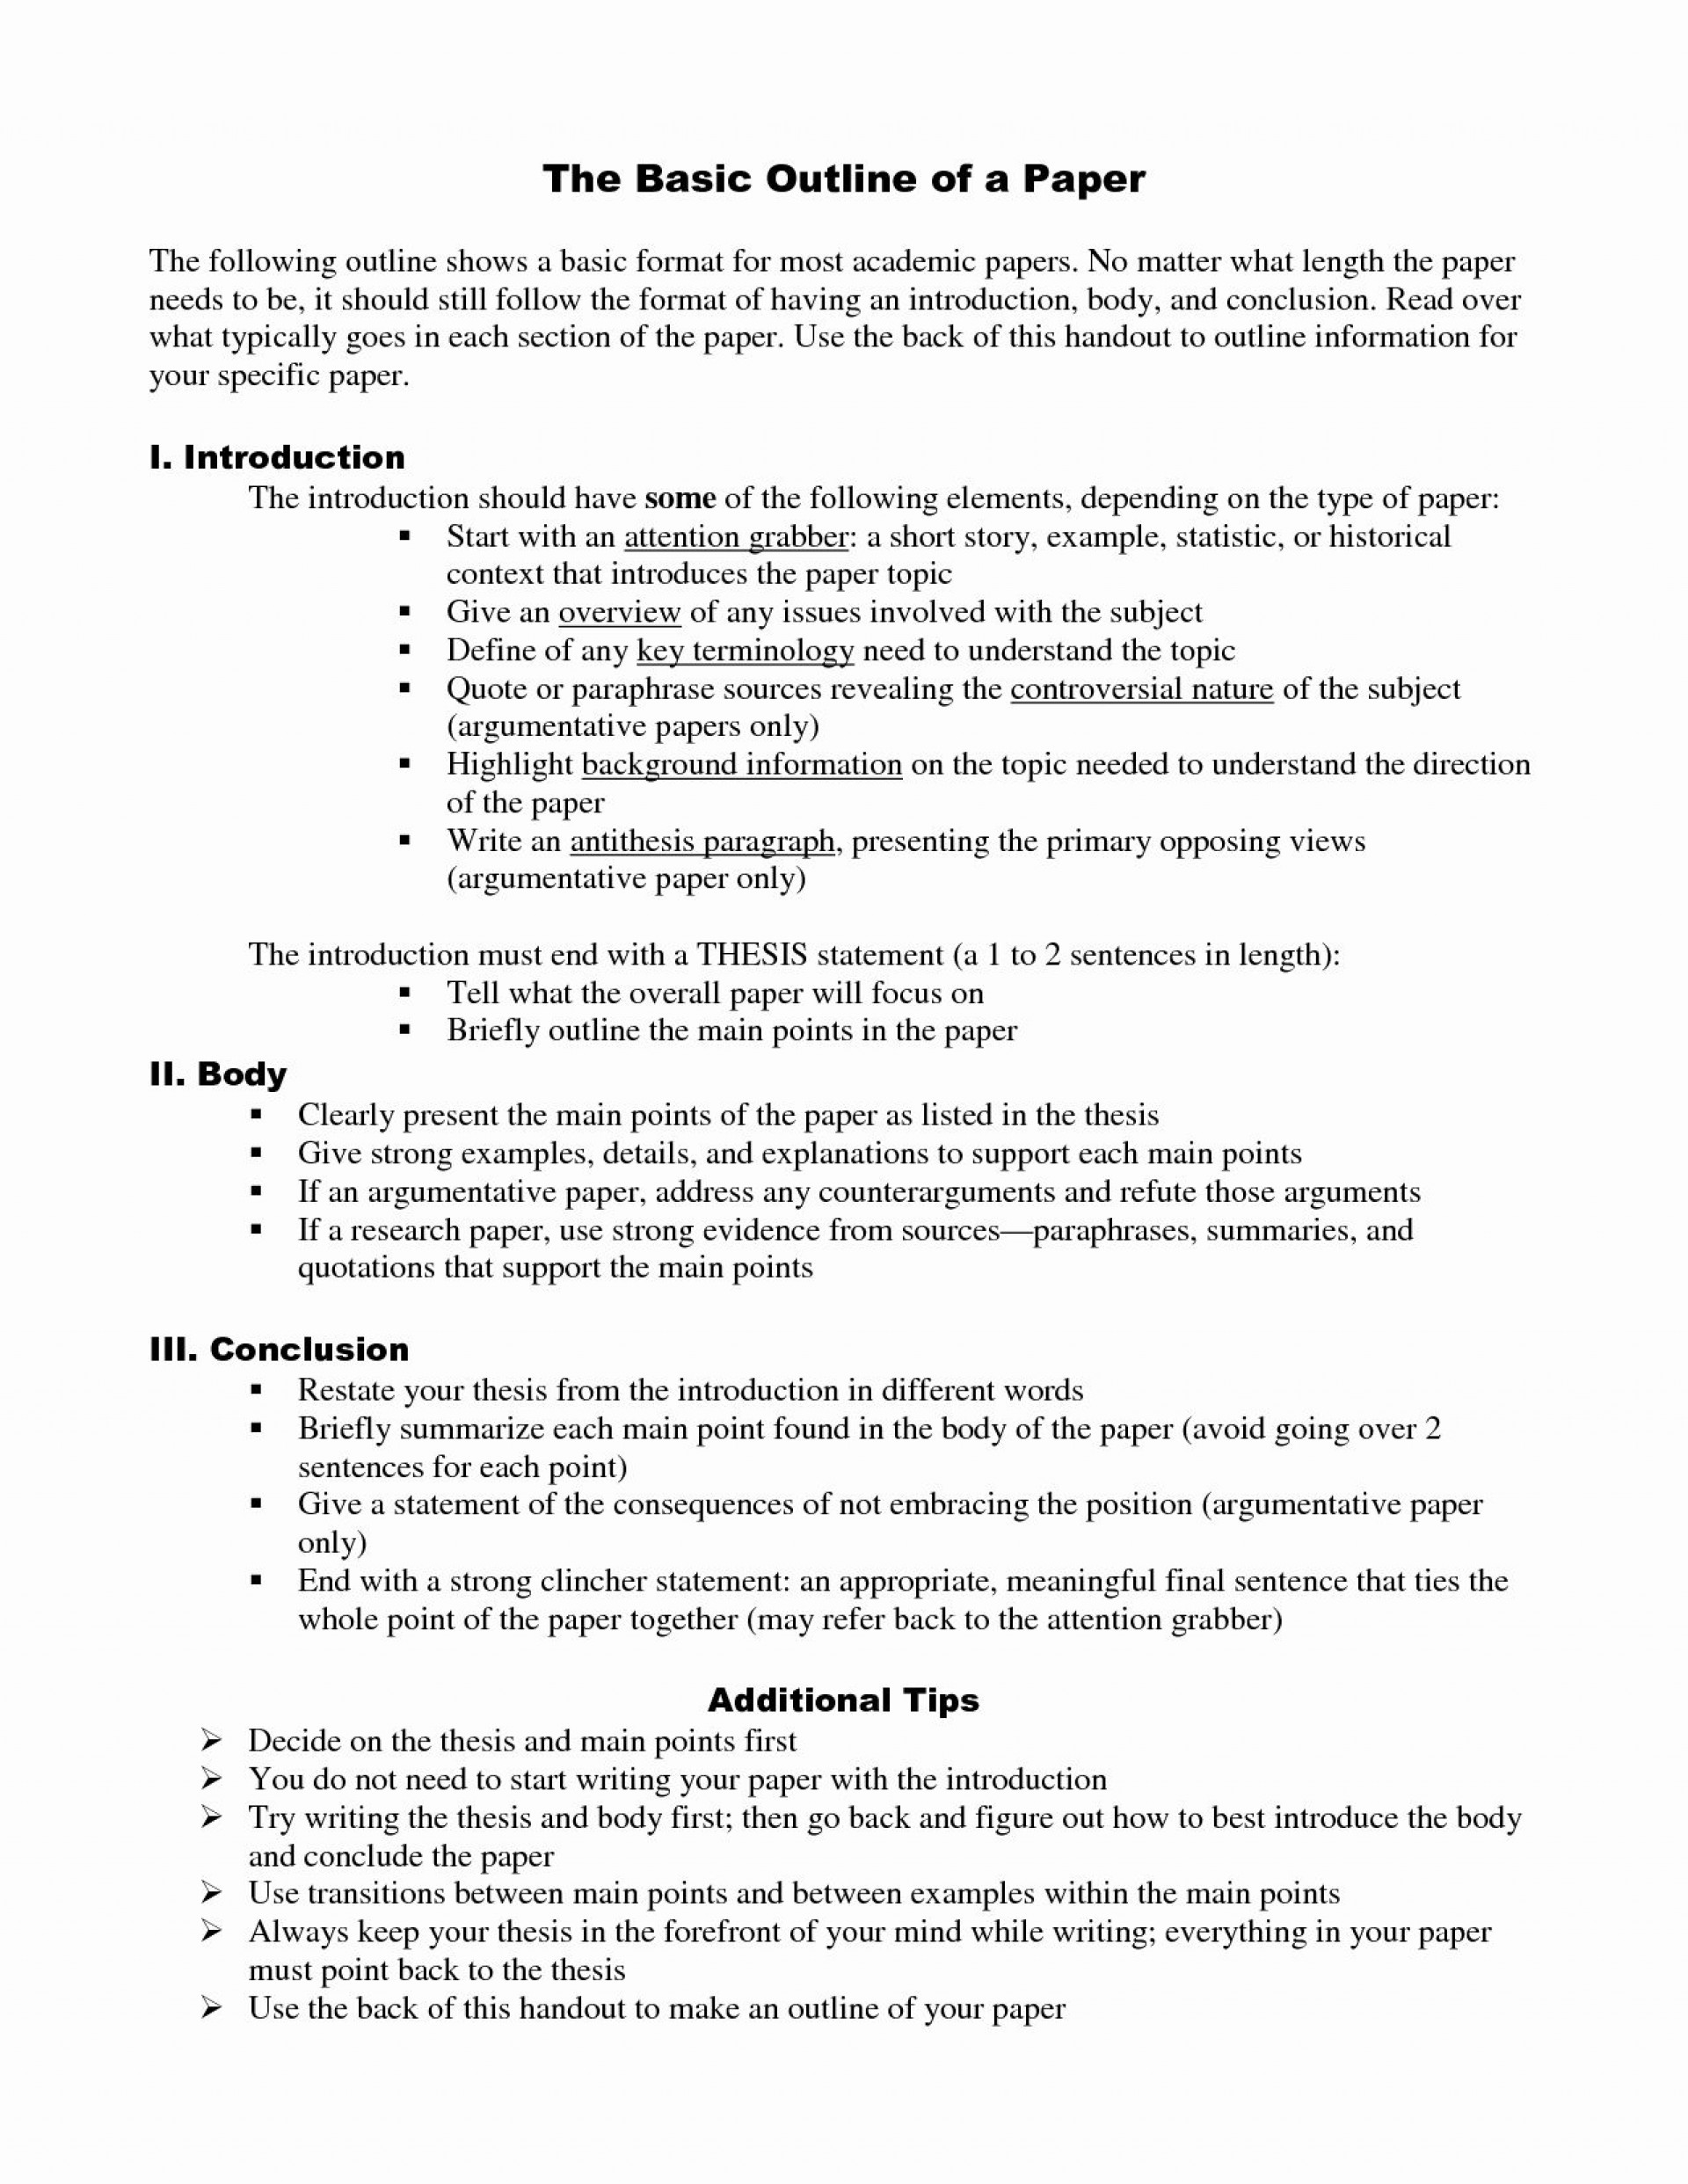 Post traumatic stress disorder research paper outline